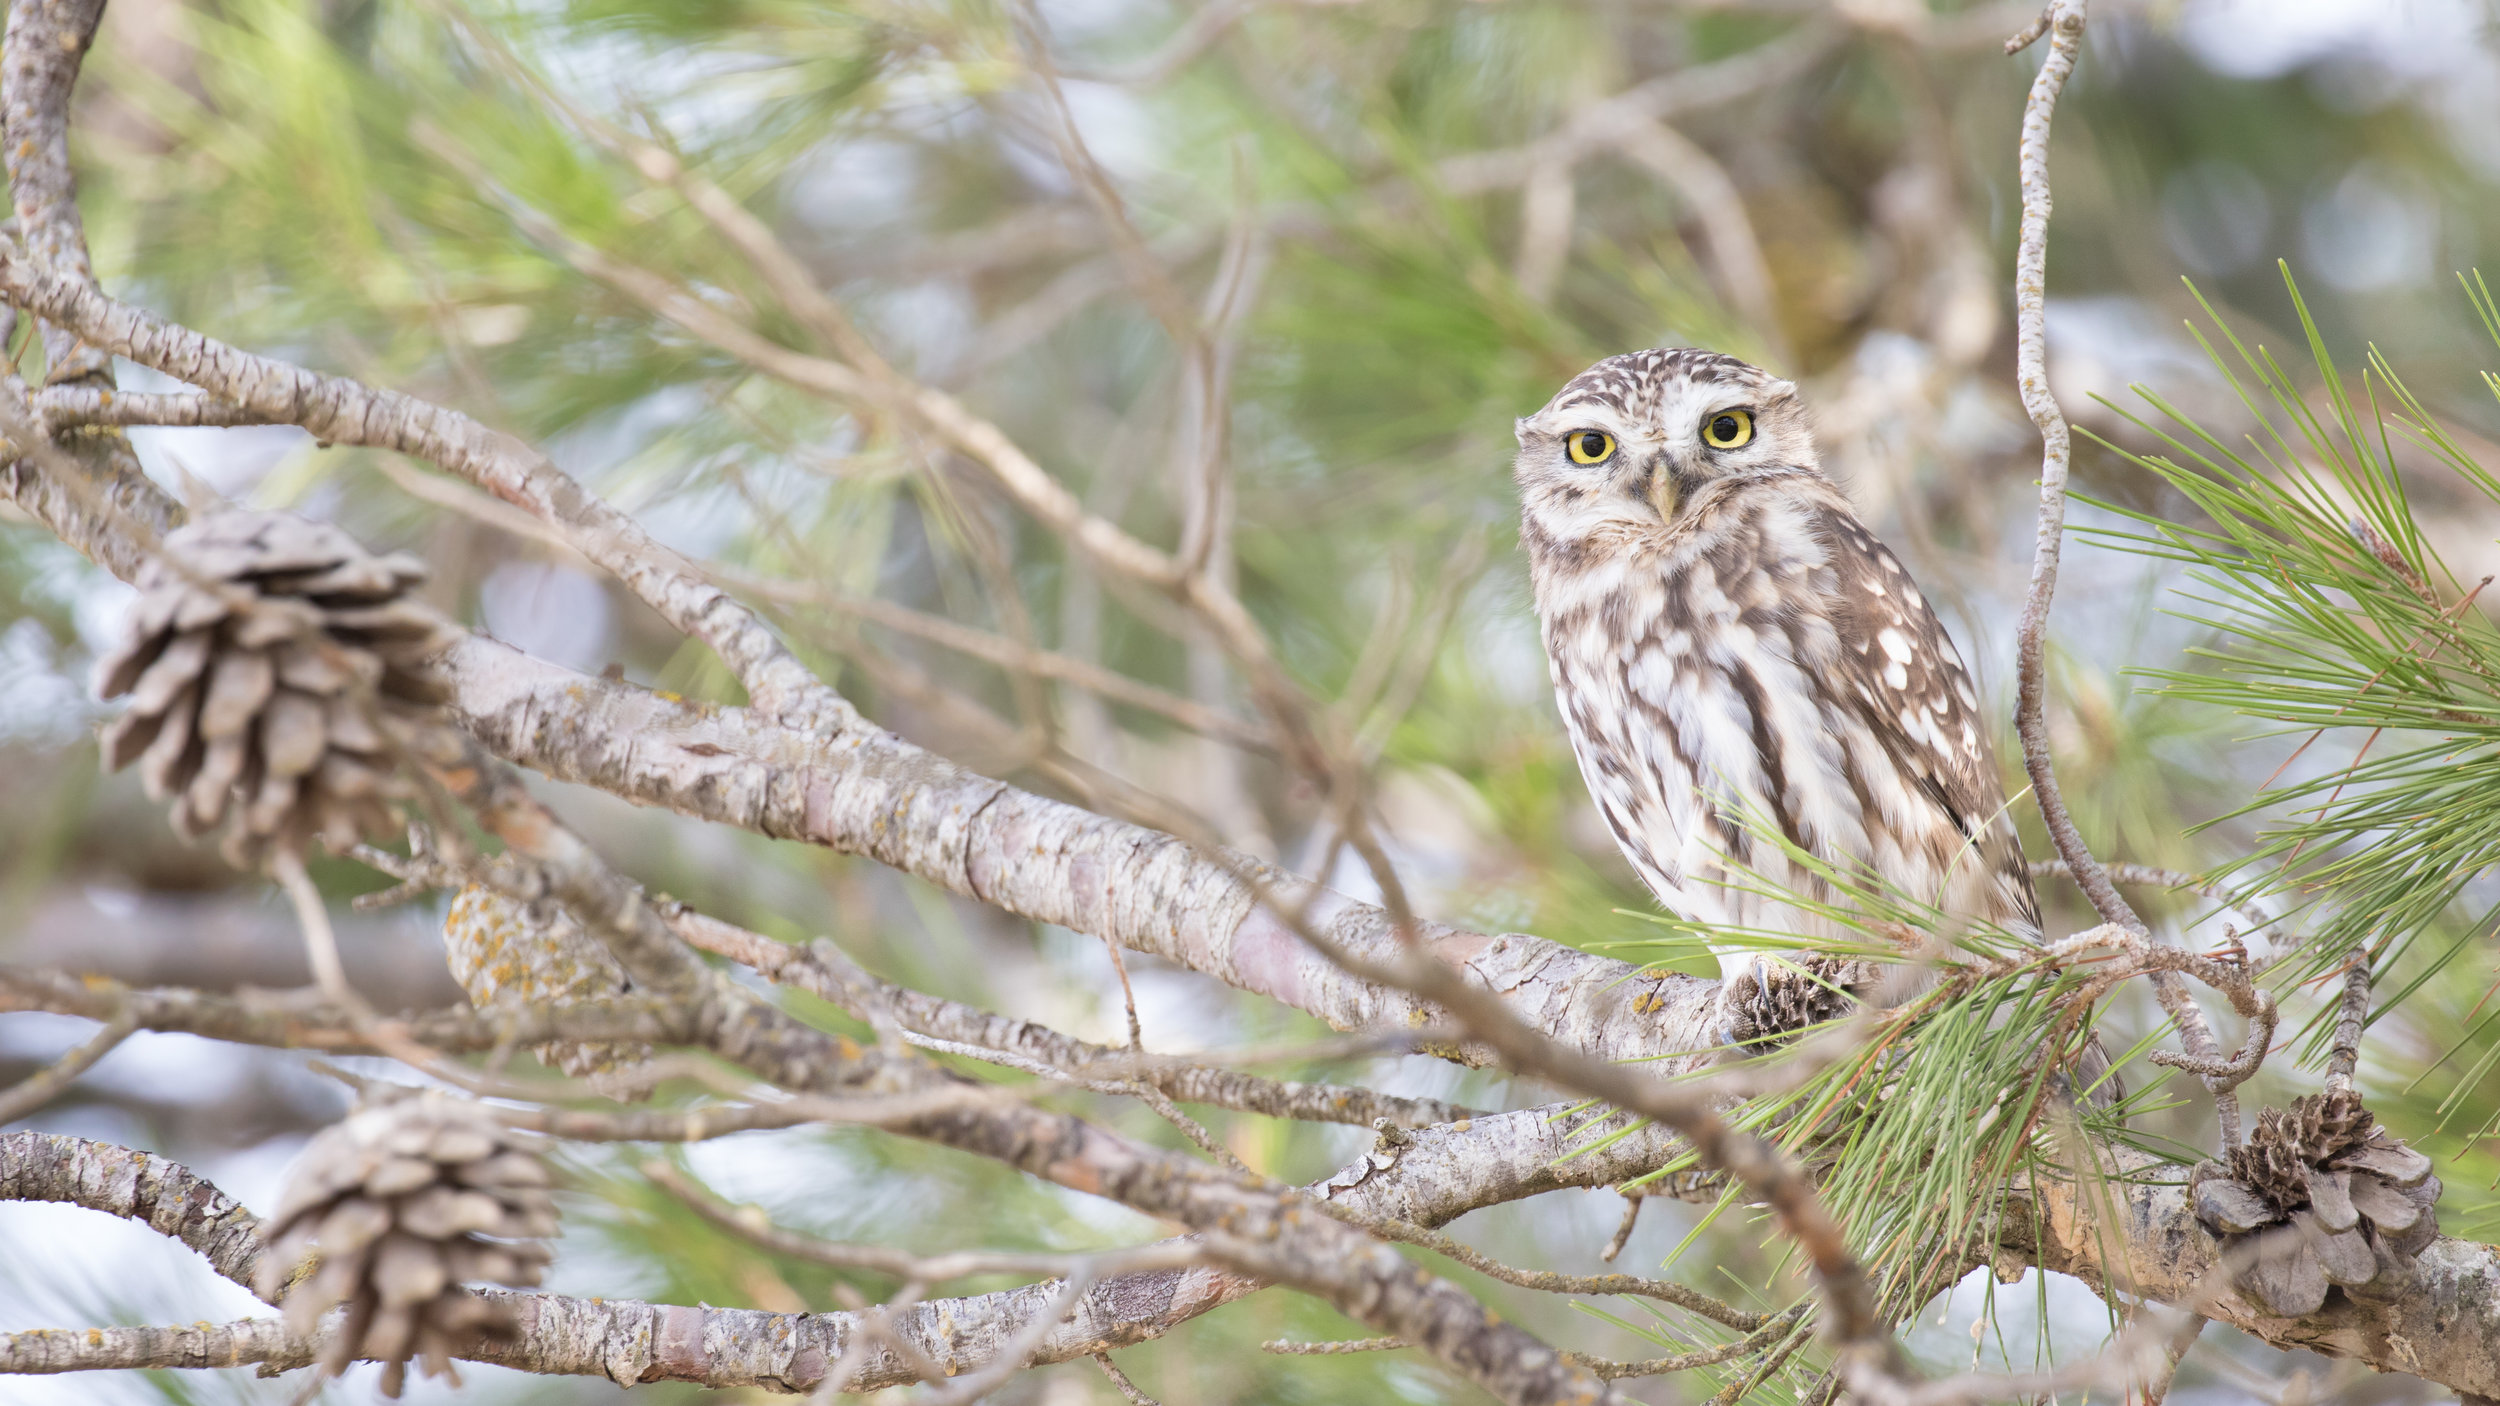 Little Owl (Athene noctua) in Spain. October 2018. Not baited. Not called in.